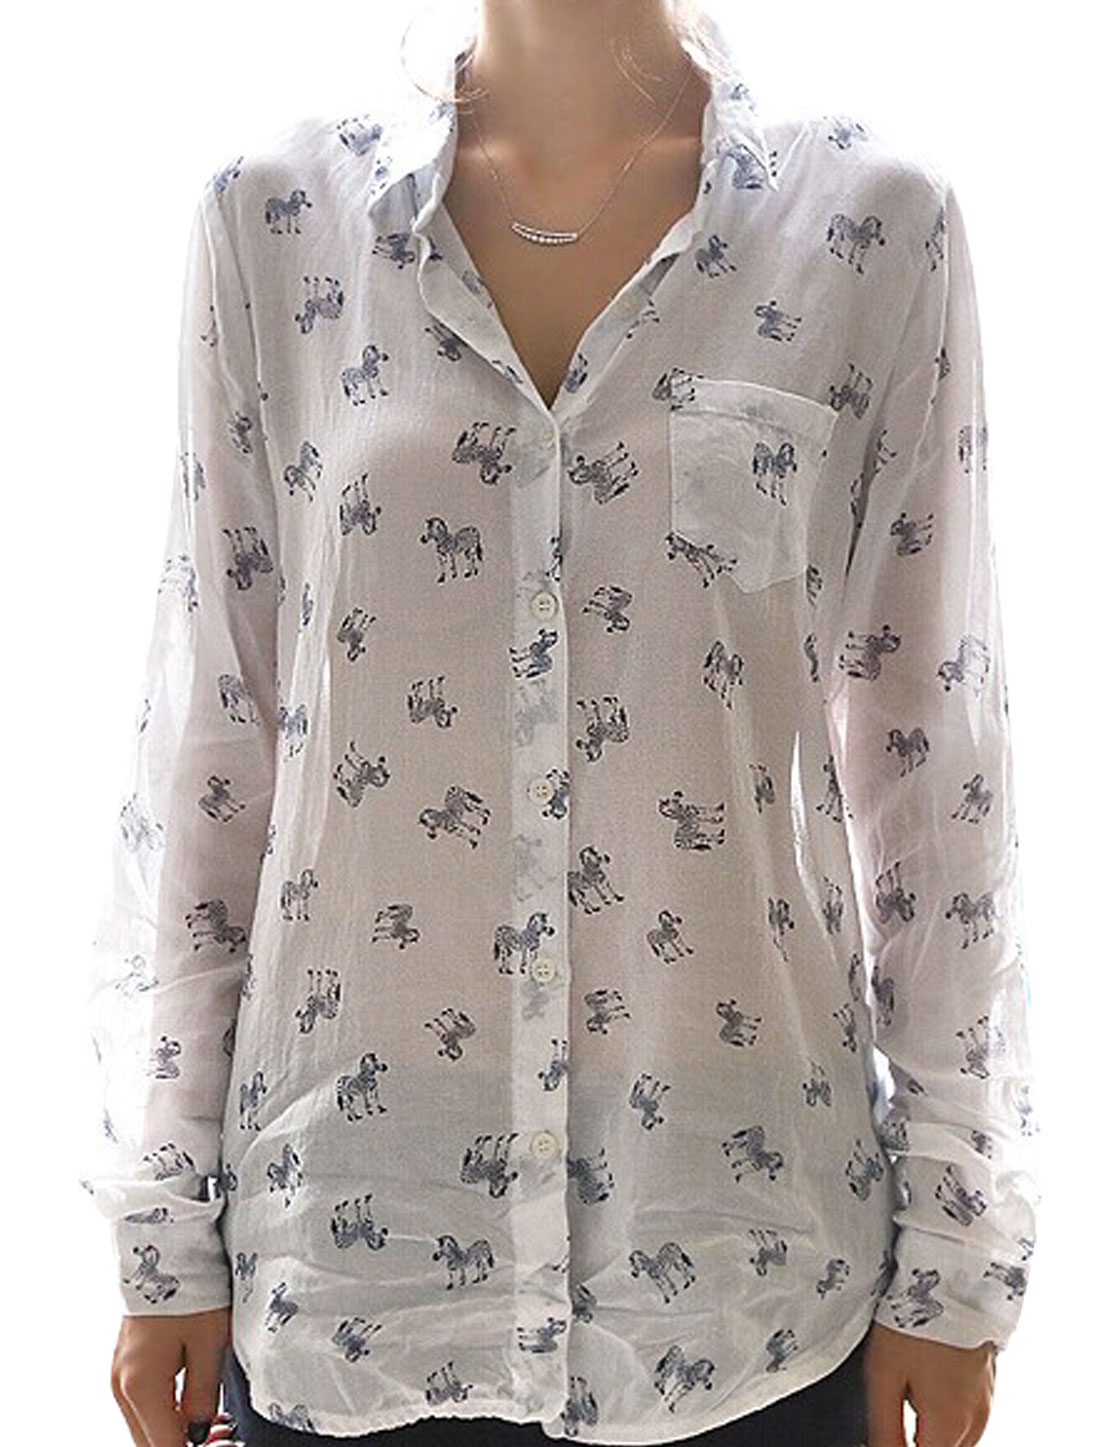 Women Zebra Pattern Single Breasted One Bust Pocket Semi Sheer Shirt White S